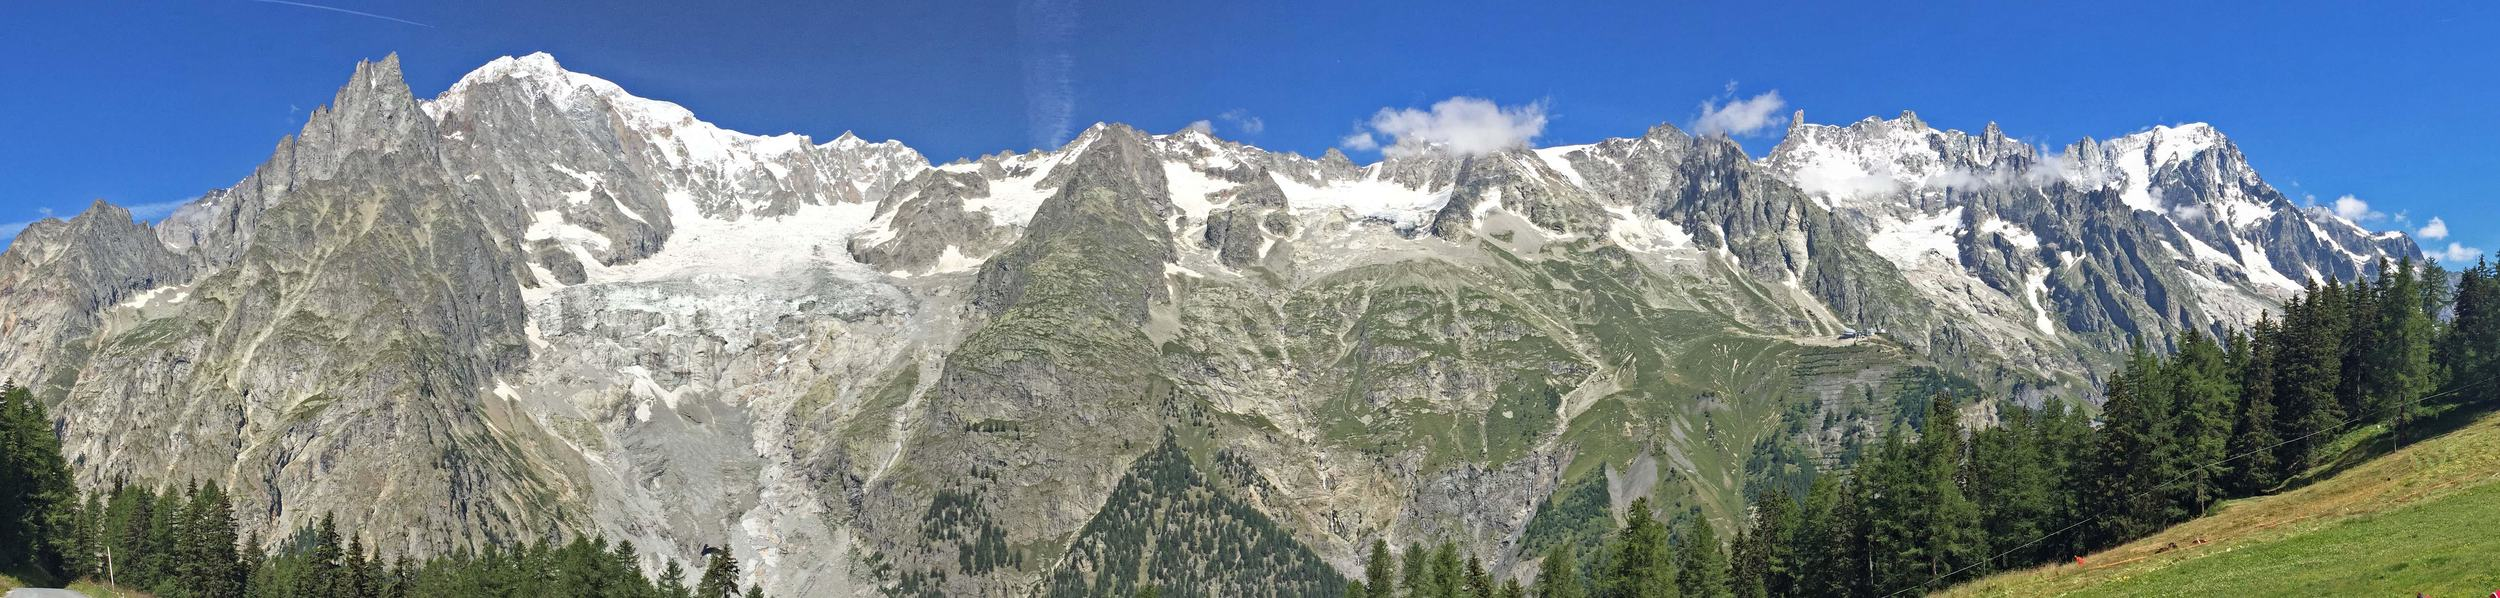 Monte Bianco from Val Veny